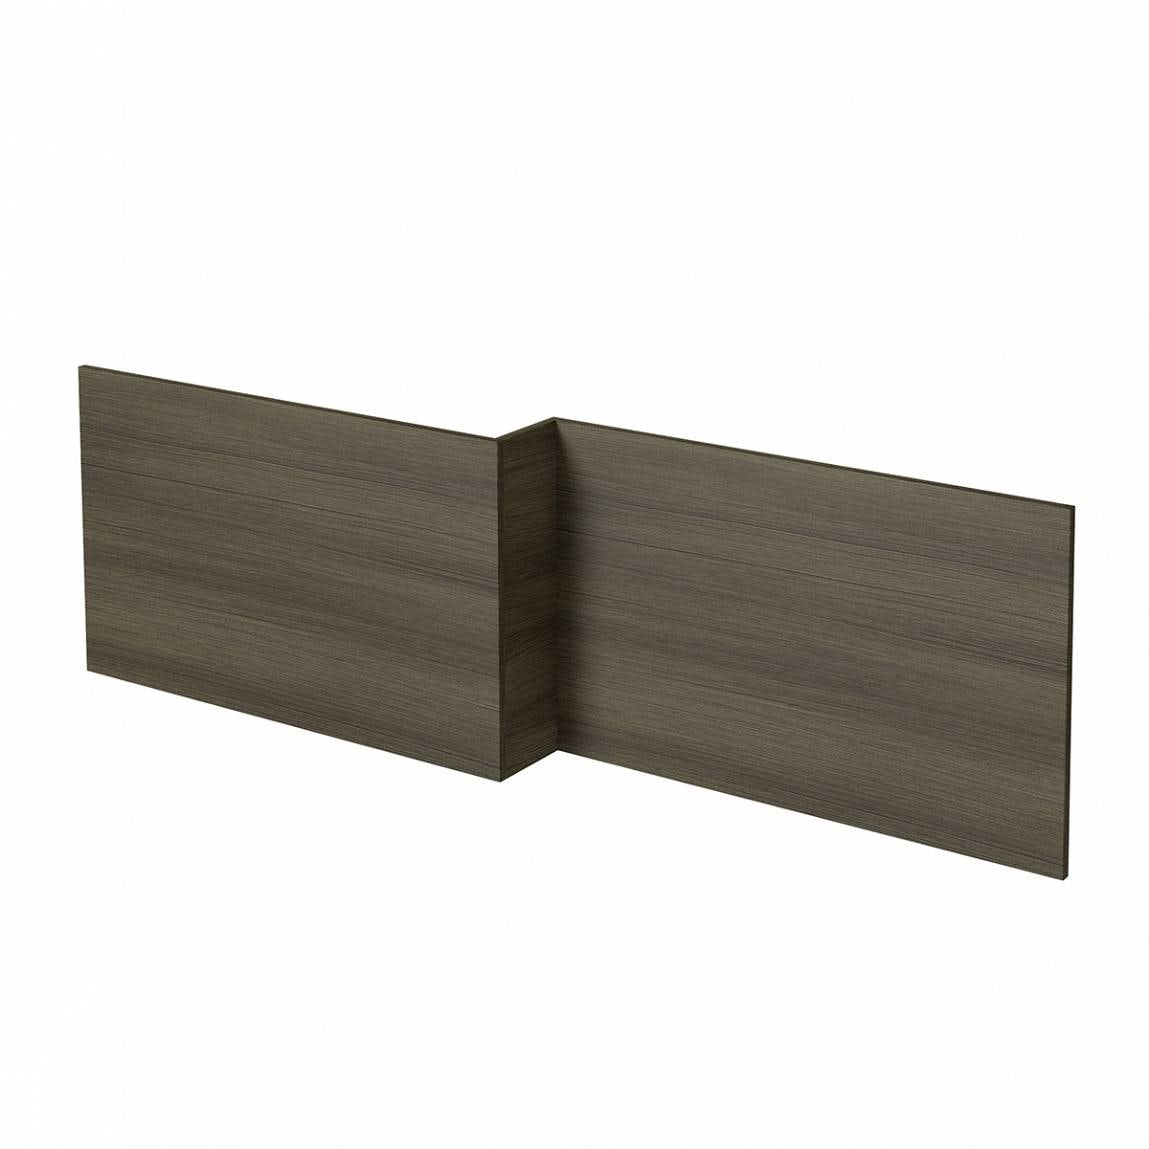 L shaped shower bath wooden front panel Drift walnut 1500mm